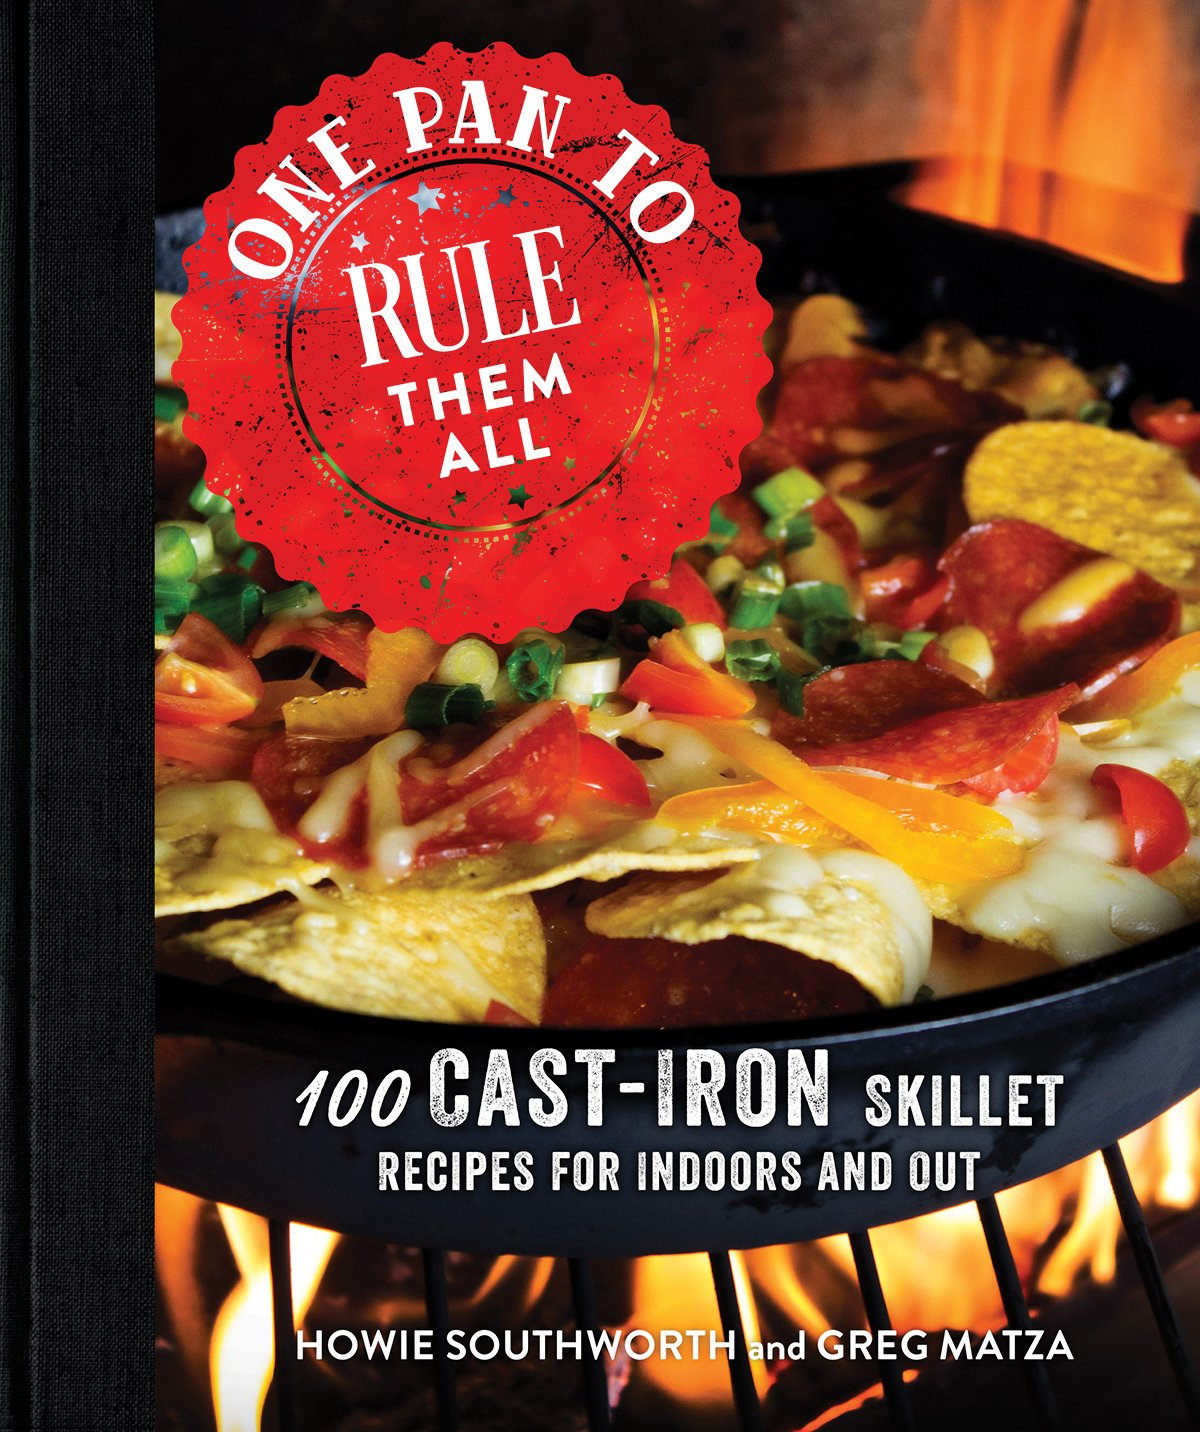 One Pan to Rule Them All: 100 Cast-Iron Skillet Recipes for Indoors and Out Hardcover – July 5, 2016 Howie Southworth Greg Matza Good Books 1680991302